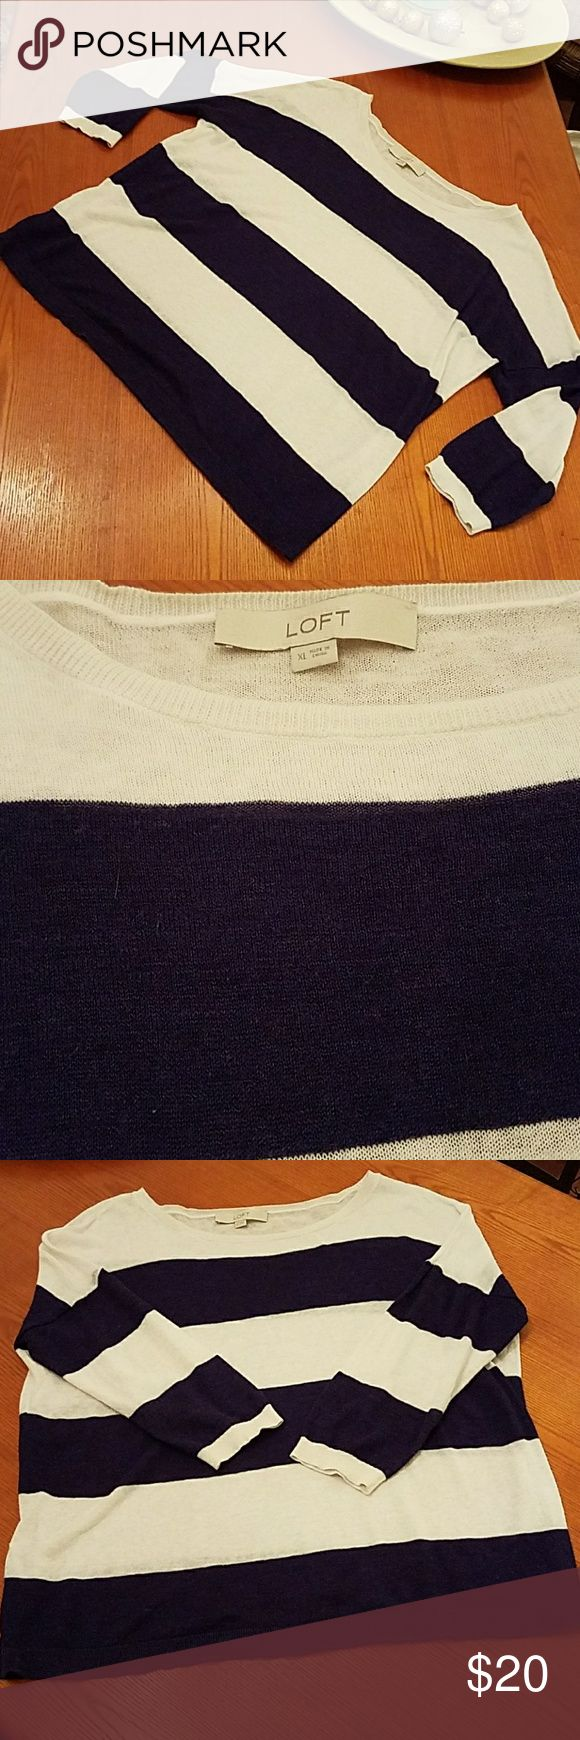 LOFT | Lightweight Nautical Stripe Sweater Extremely lightweight sweater with oversize fit.  Slightly sheer, great for layering or alone with cami underneath. Approx 3/4 sleeve. Very good used condition.   - 33% Ramie, 26% Linen, 21% Rayon, 20% Cotton LOFT Tops